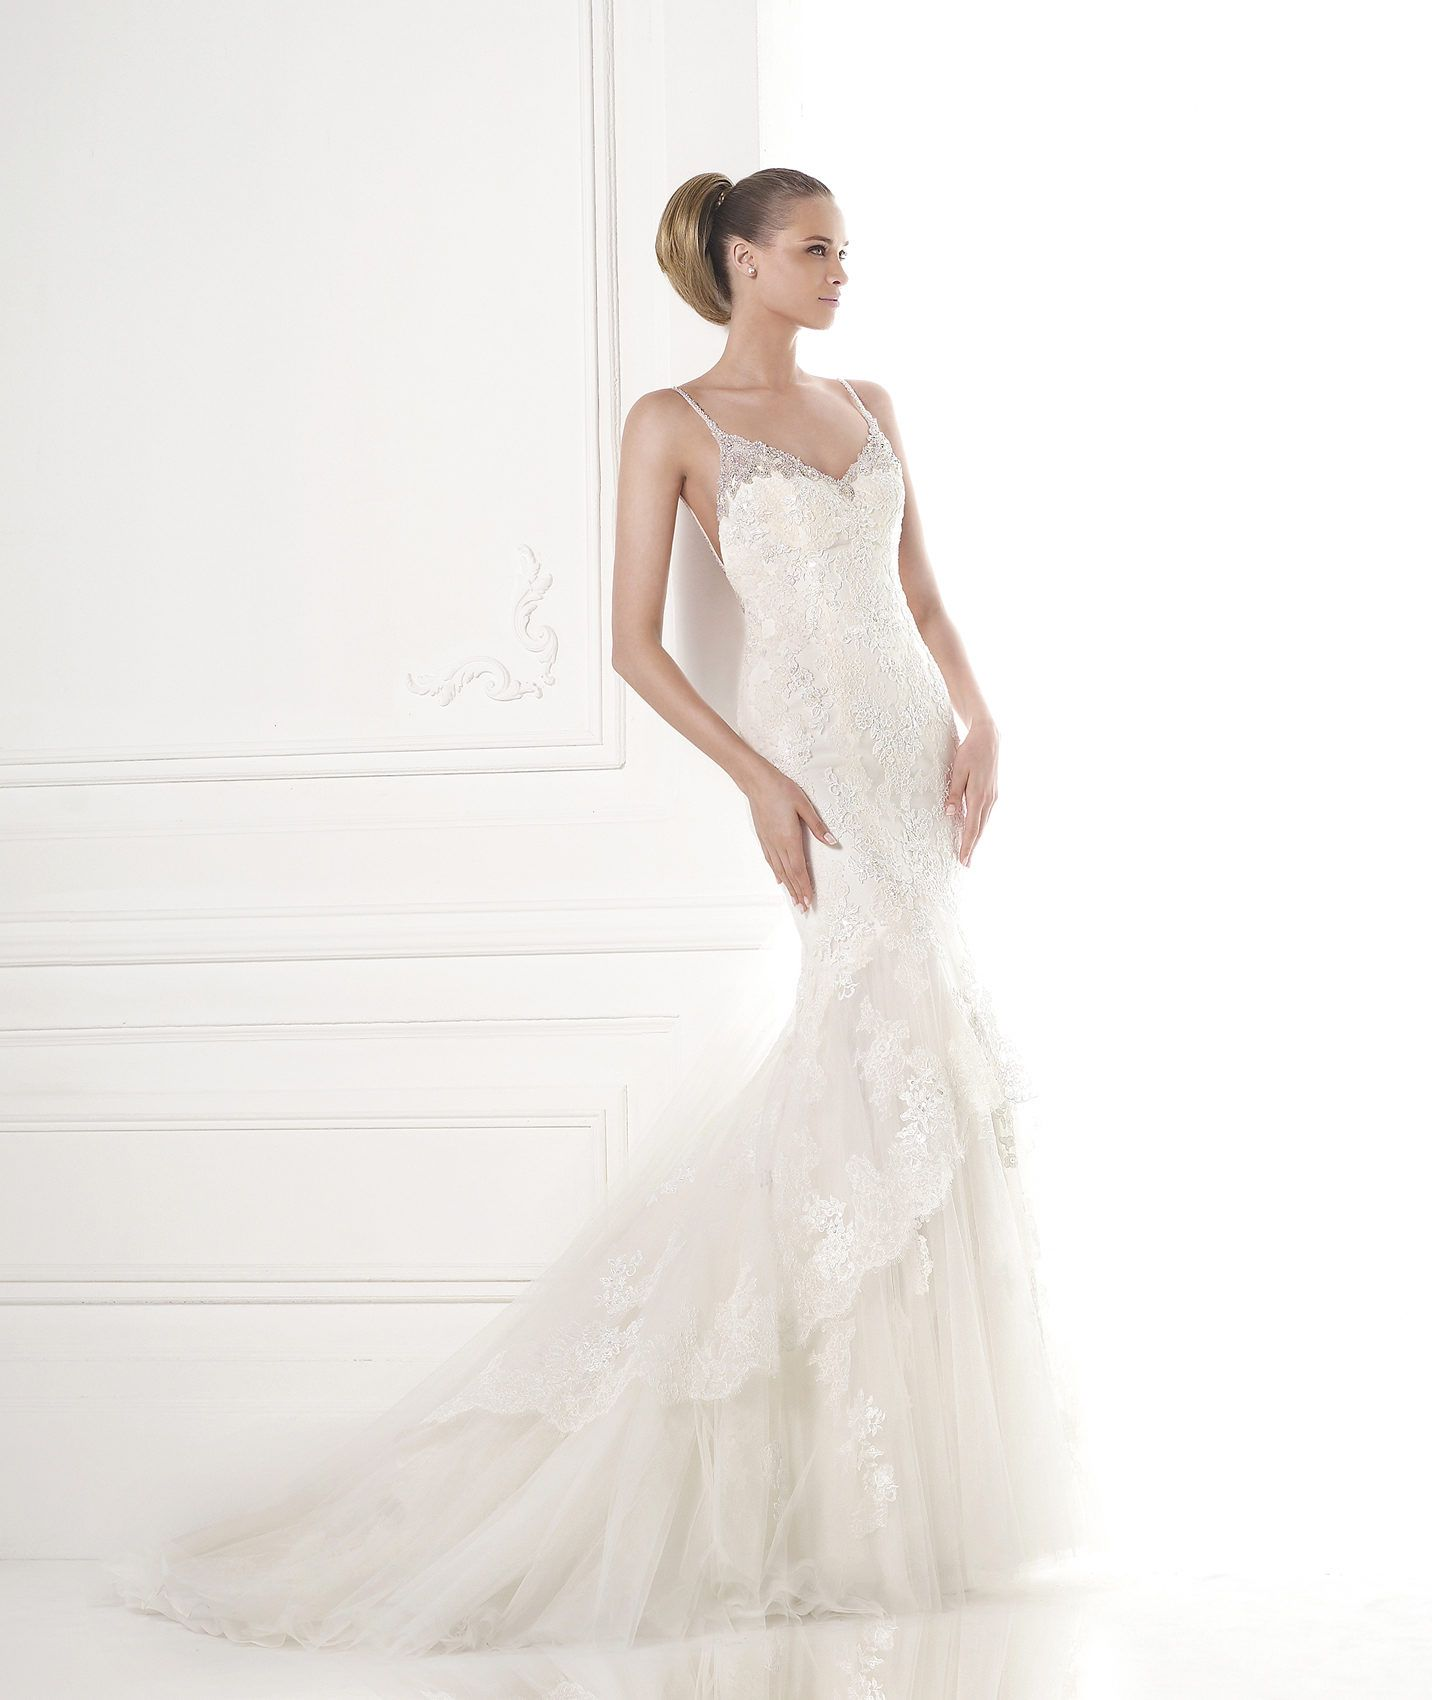 MARIANA, Wedding Dress 2015 Pronovias Fashion Collection | pinned by ...